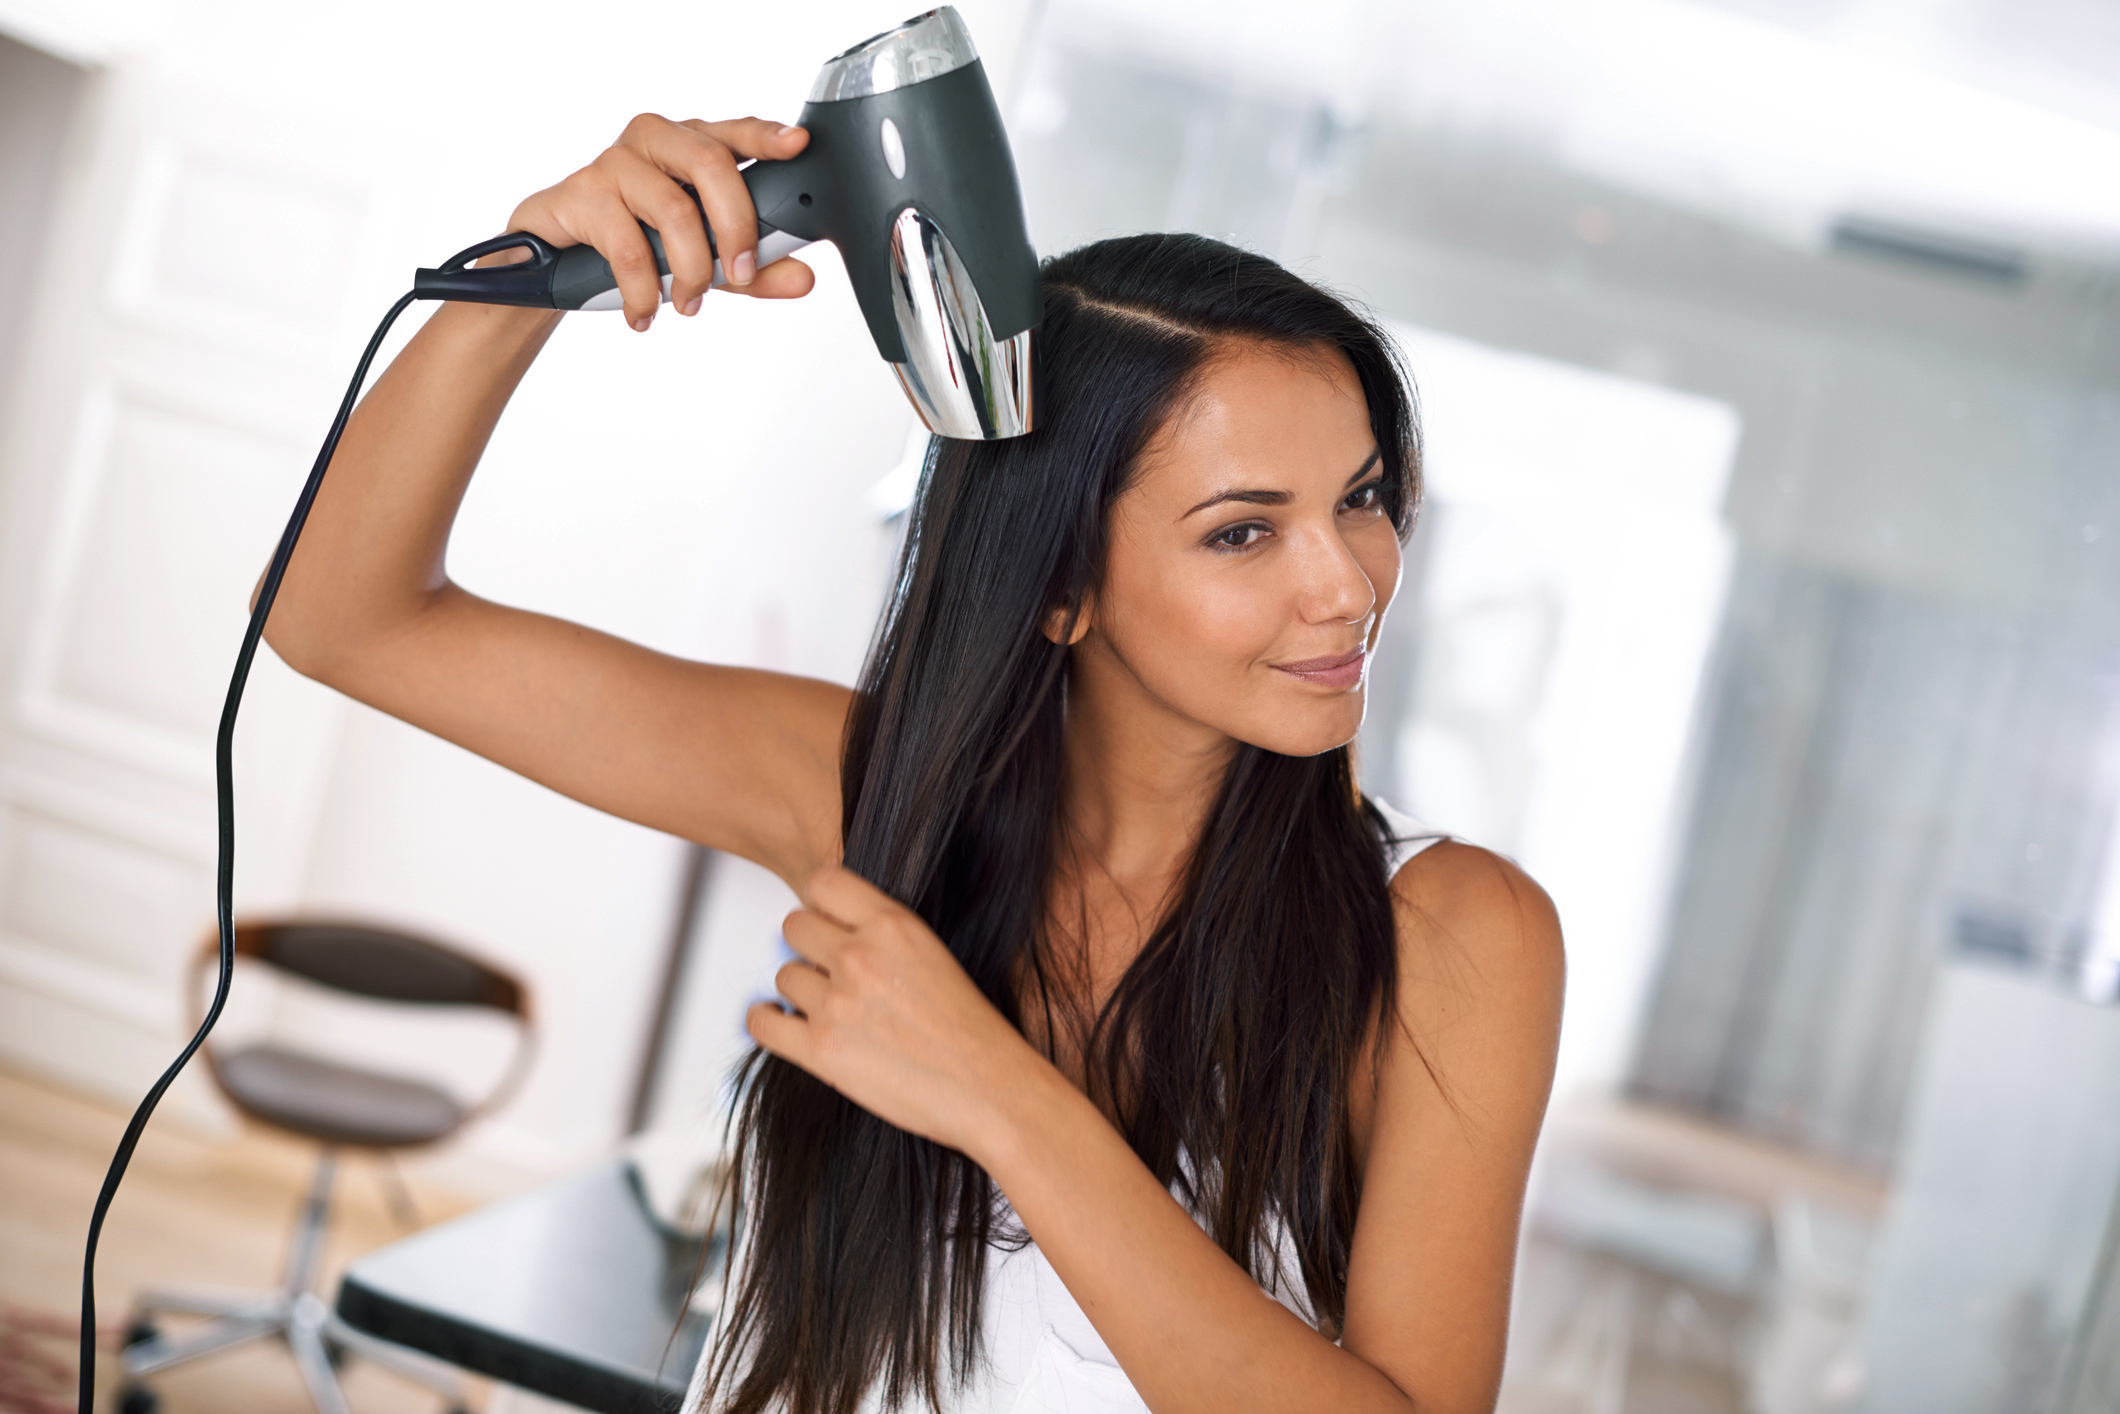 using hair dryer